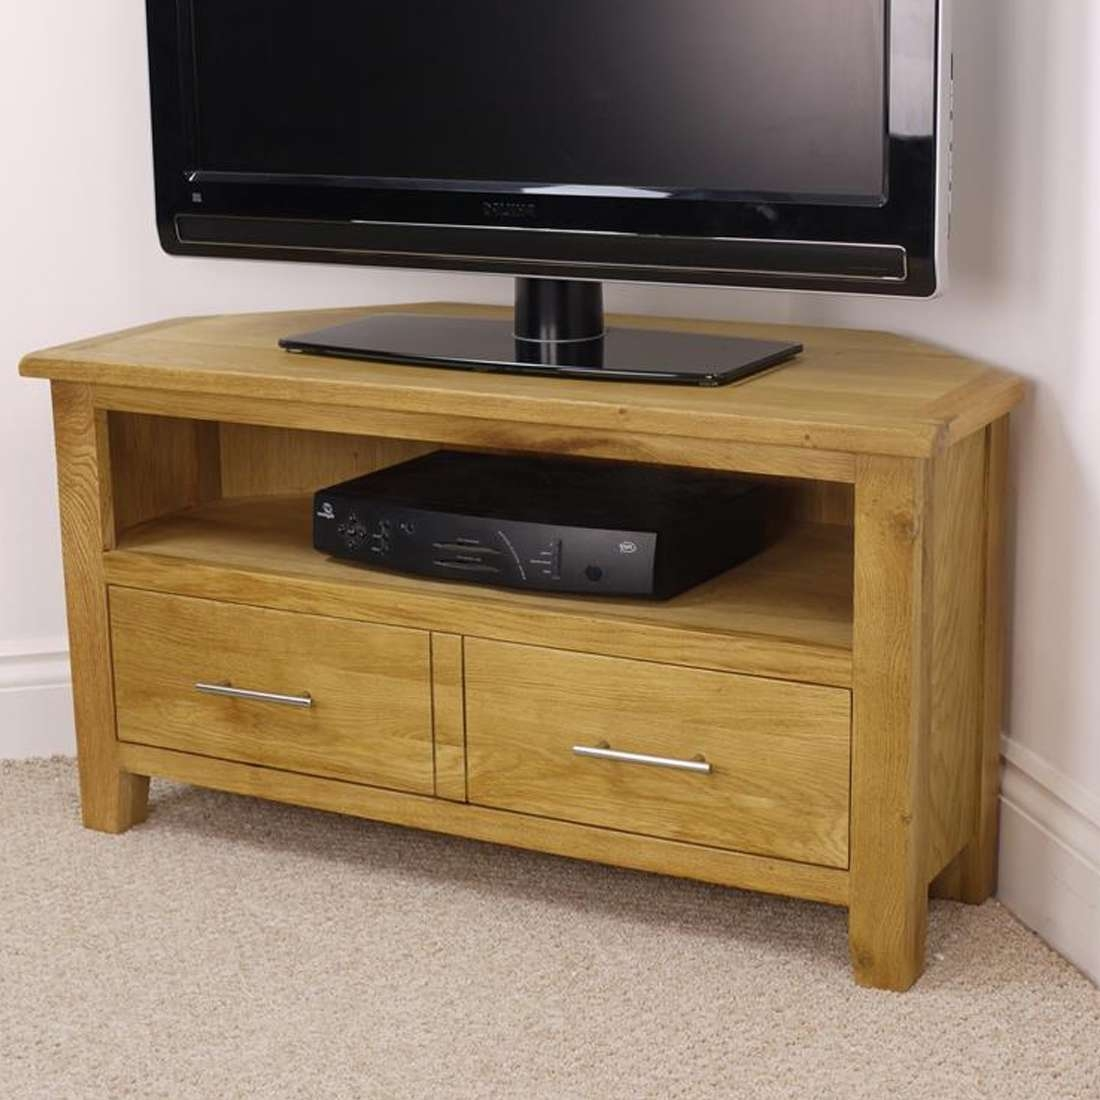 Nebraska Modern Oak Corner Tv Unit / Solid Wood Tv Stand / Oiled With Regard To Tv Stands In Oak (View 11 of 15)